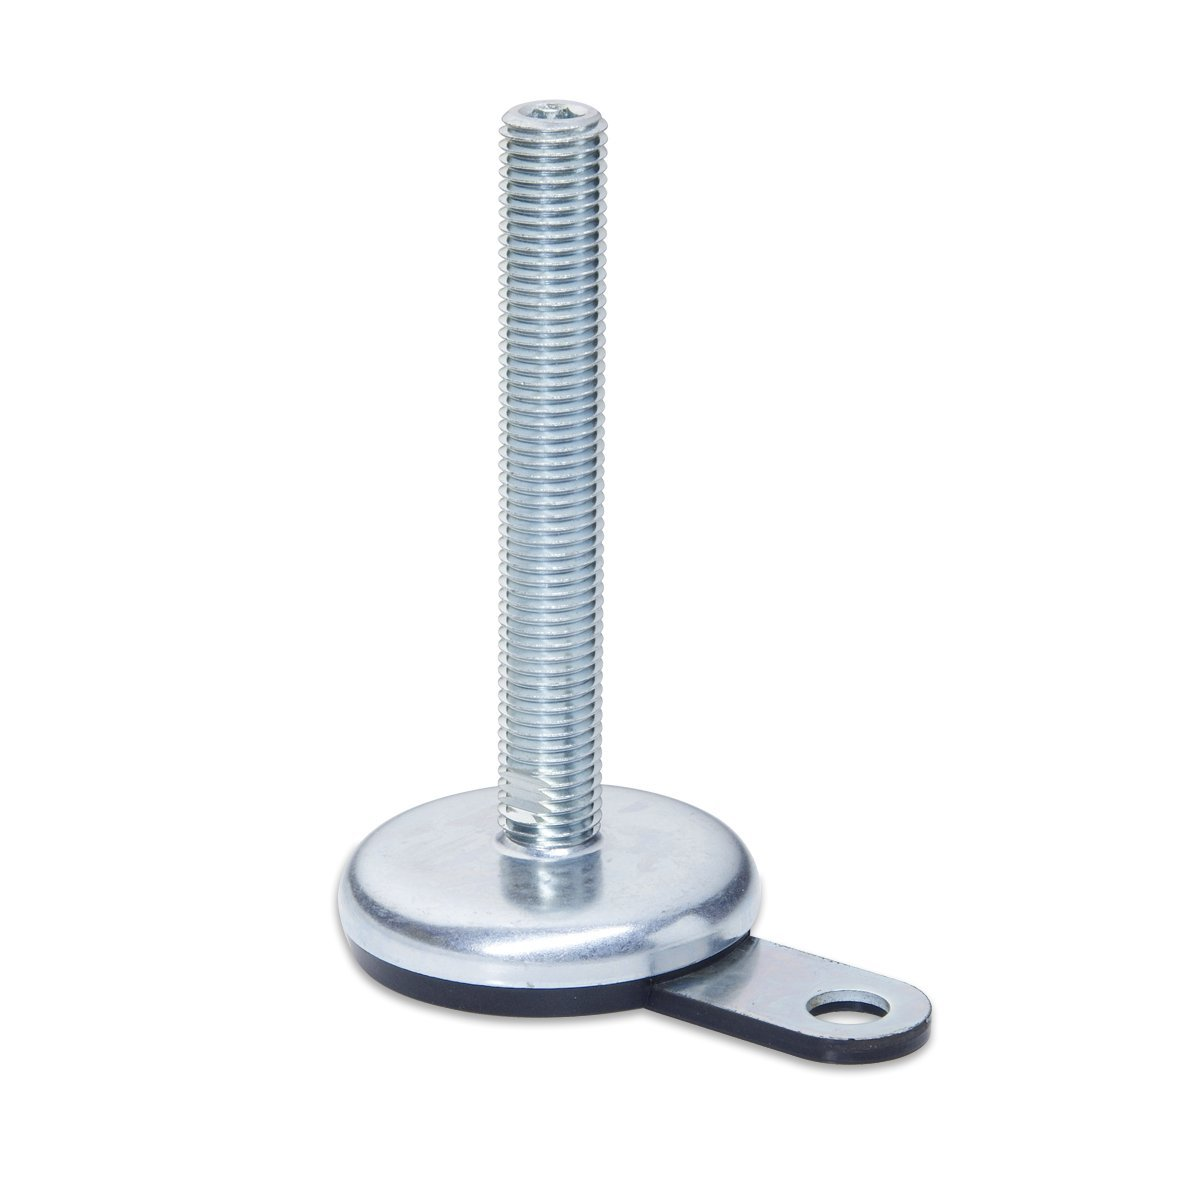 Winco 10T75P07//A Series GN 340.1 Steel Leveling Mount with Lag Bolt Lug J.W 2.95 Thread Length 3.15 Base Diameter Inc. 3.15 Base Diameter Inch Size 5//8-11 Thread Size Rubber Pad Inlay Without Nut Zinc Plated and Blue Passivated Finish